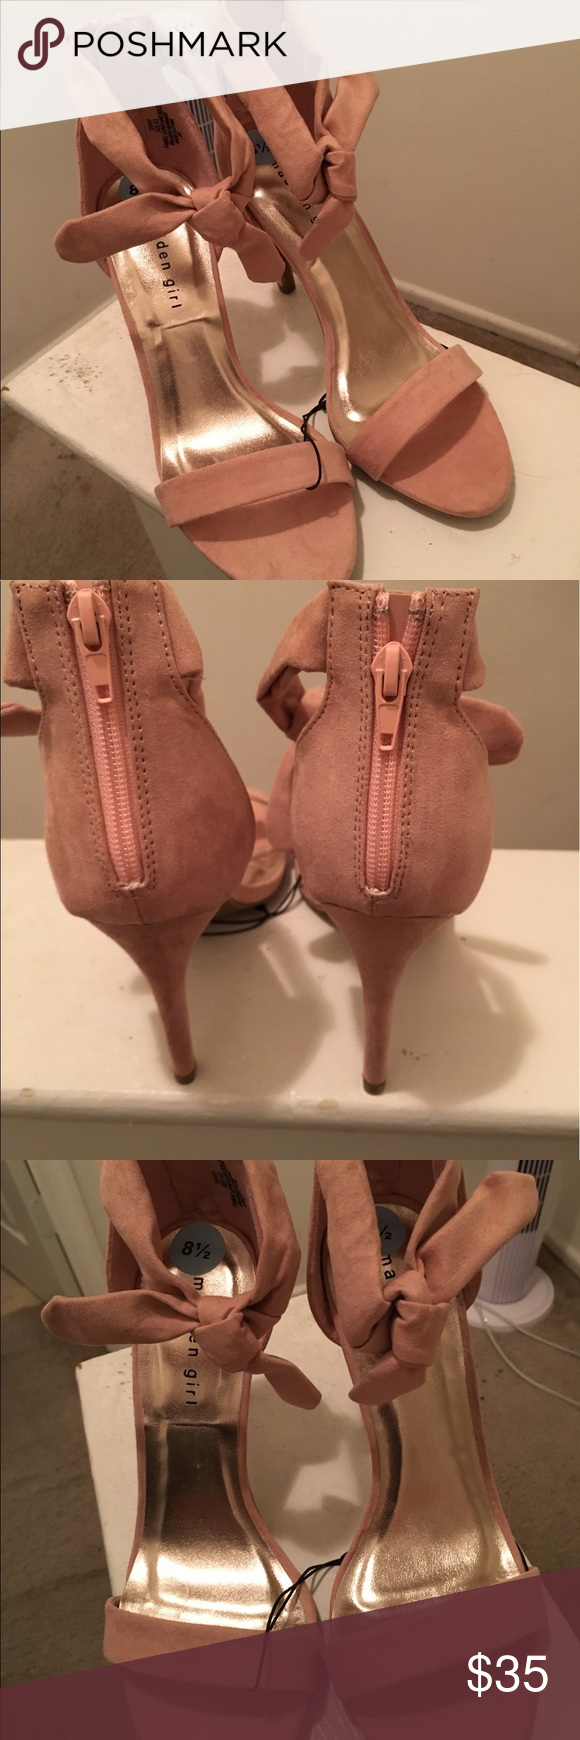 New Pink Blush Madden Girl 8.5 A summer must have! The bow detail is so sexy and edgy!!! Madden Girl Shoes